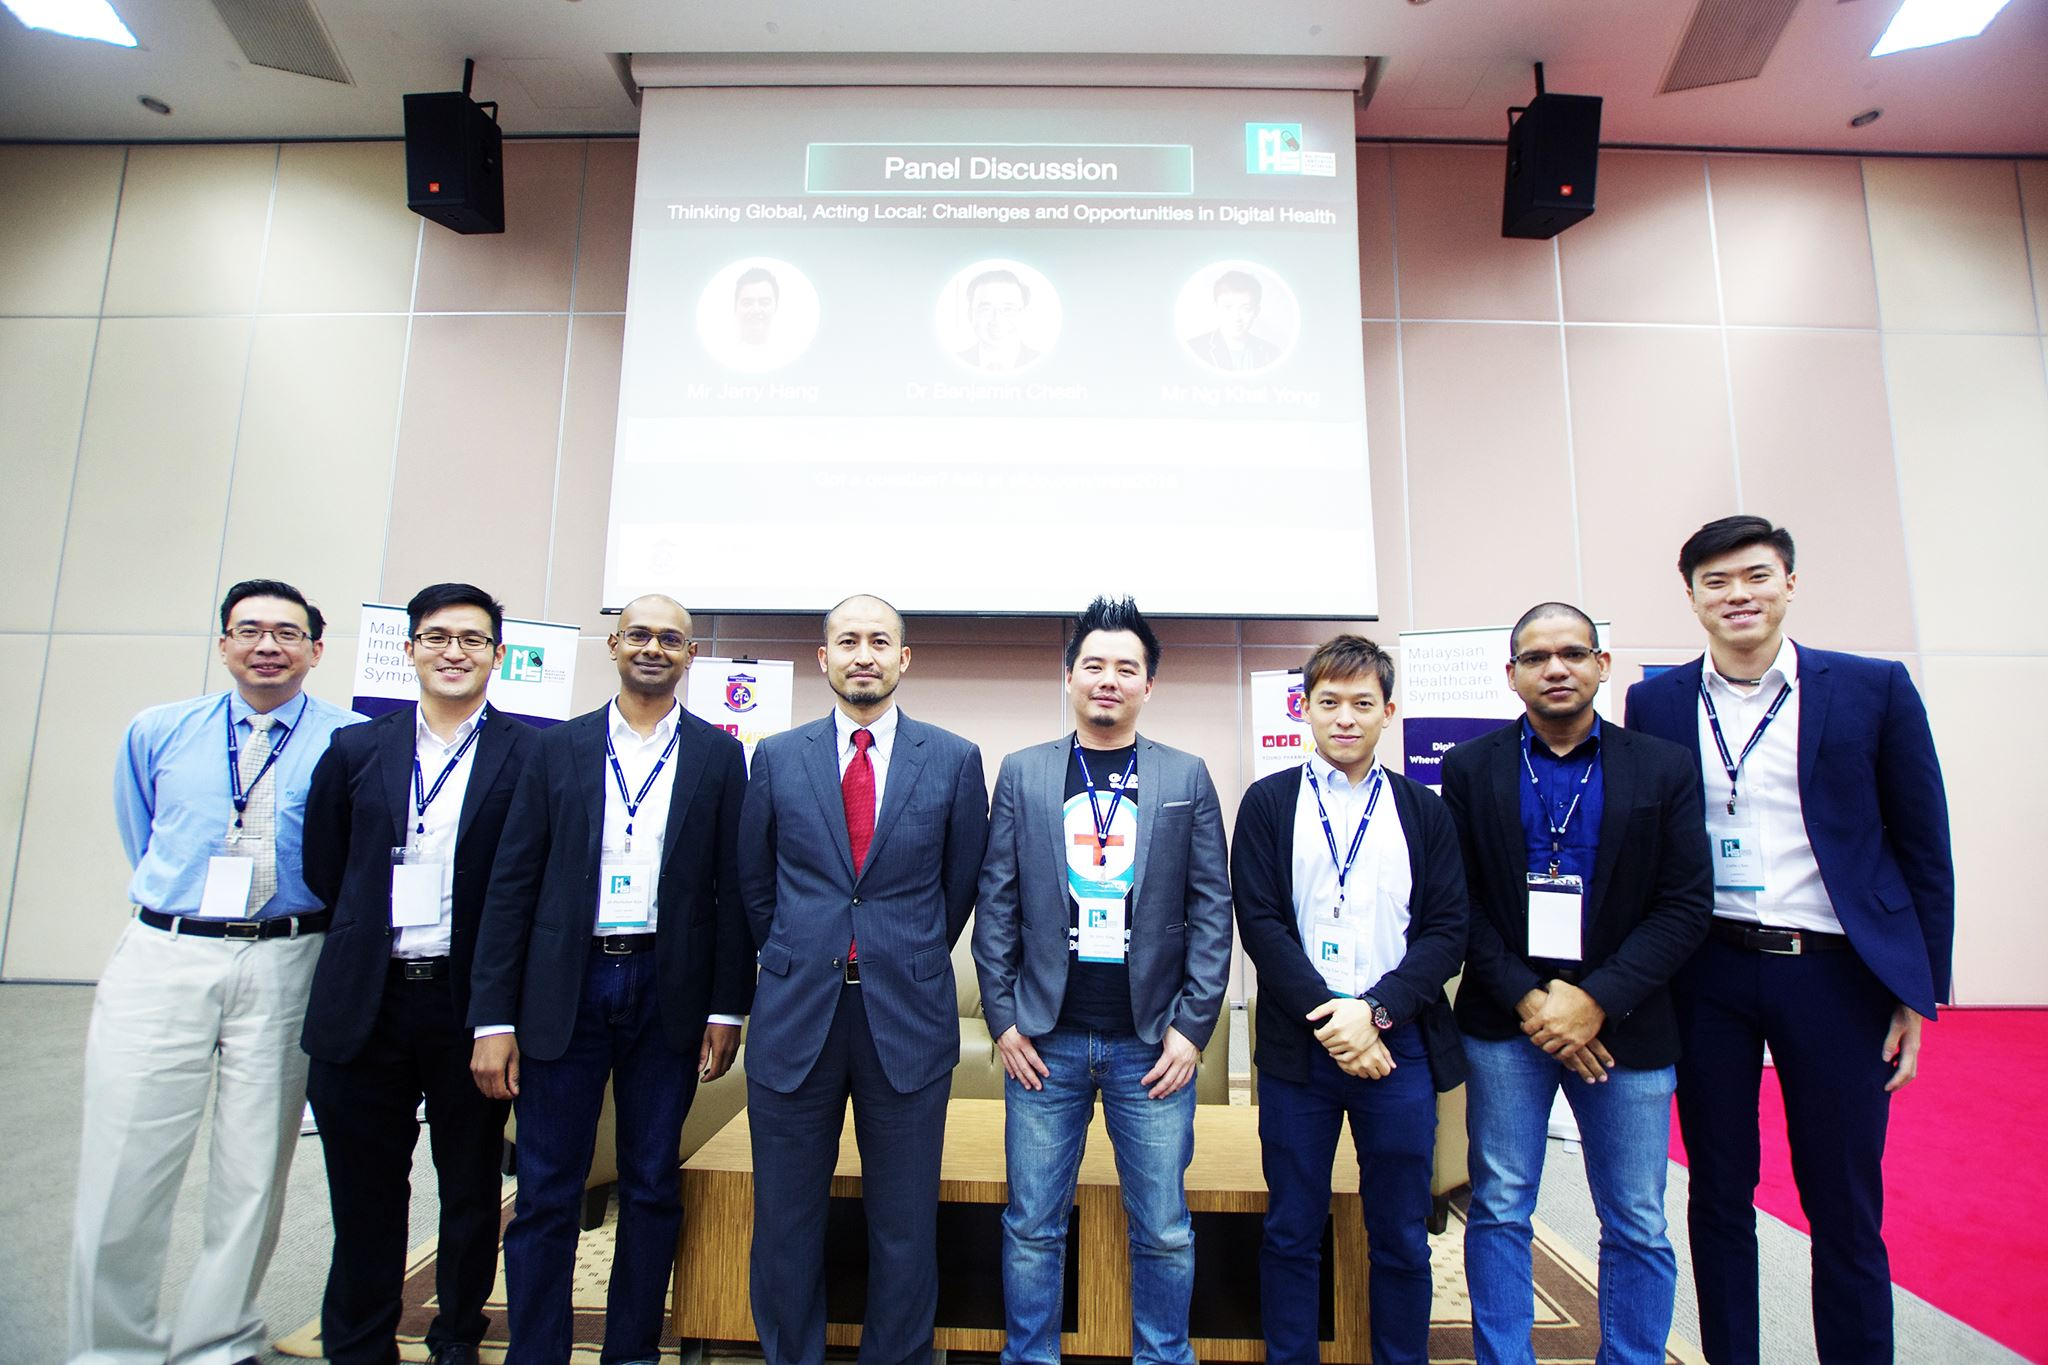 IMU Alumnus as Organising Chairperson of Malaysian Innovative Healthcare Symposium